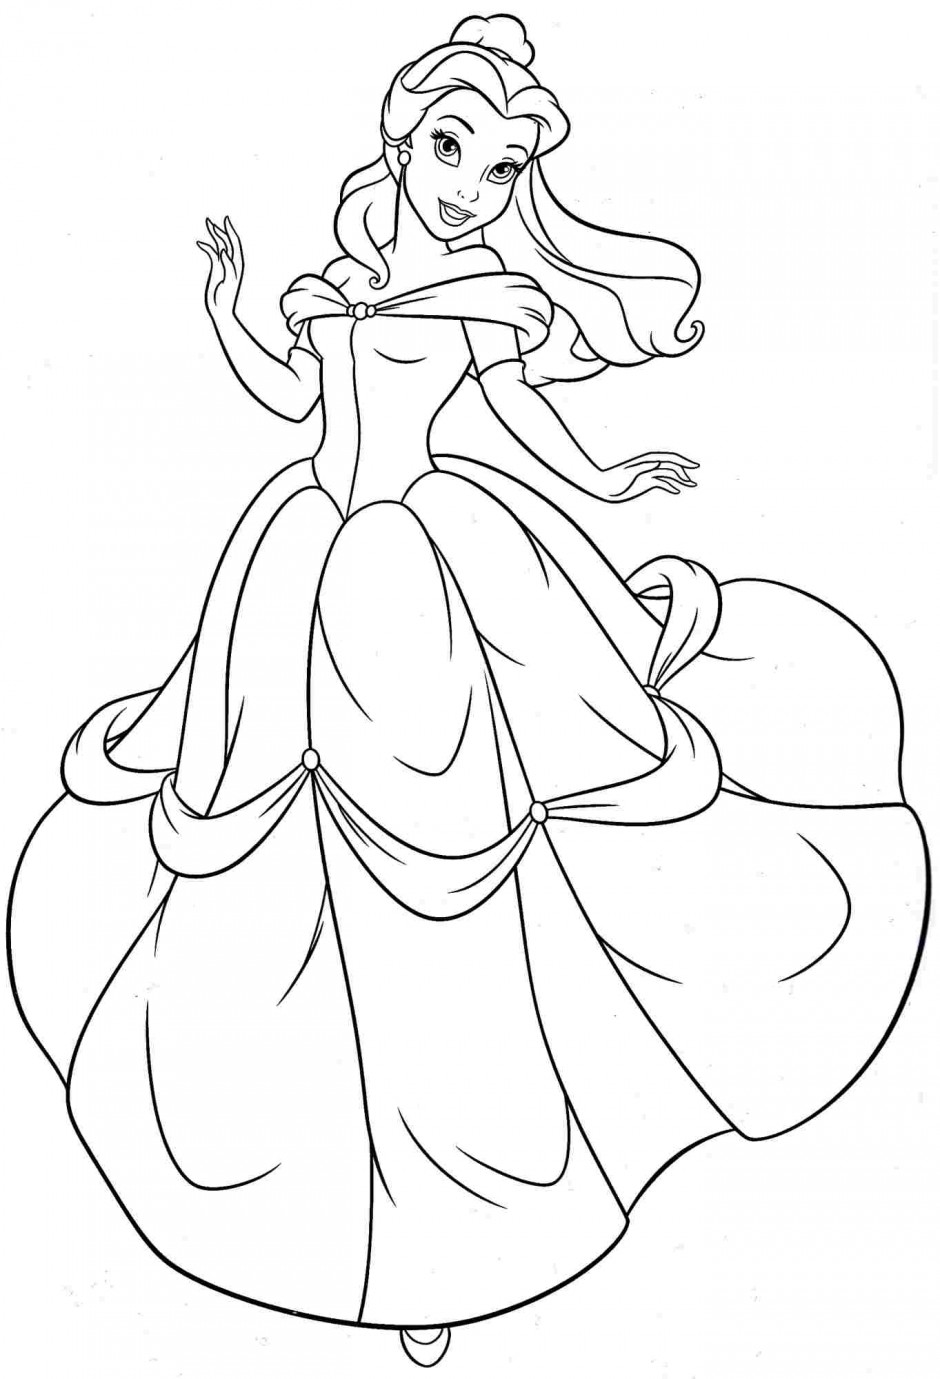 kids disney princess coloring pages - photo#27